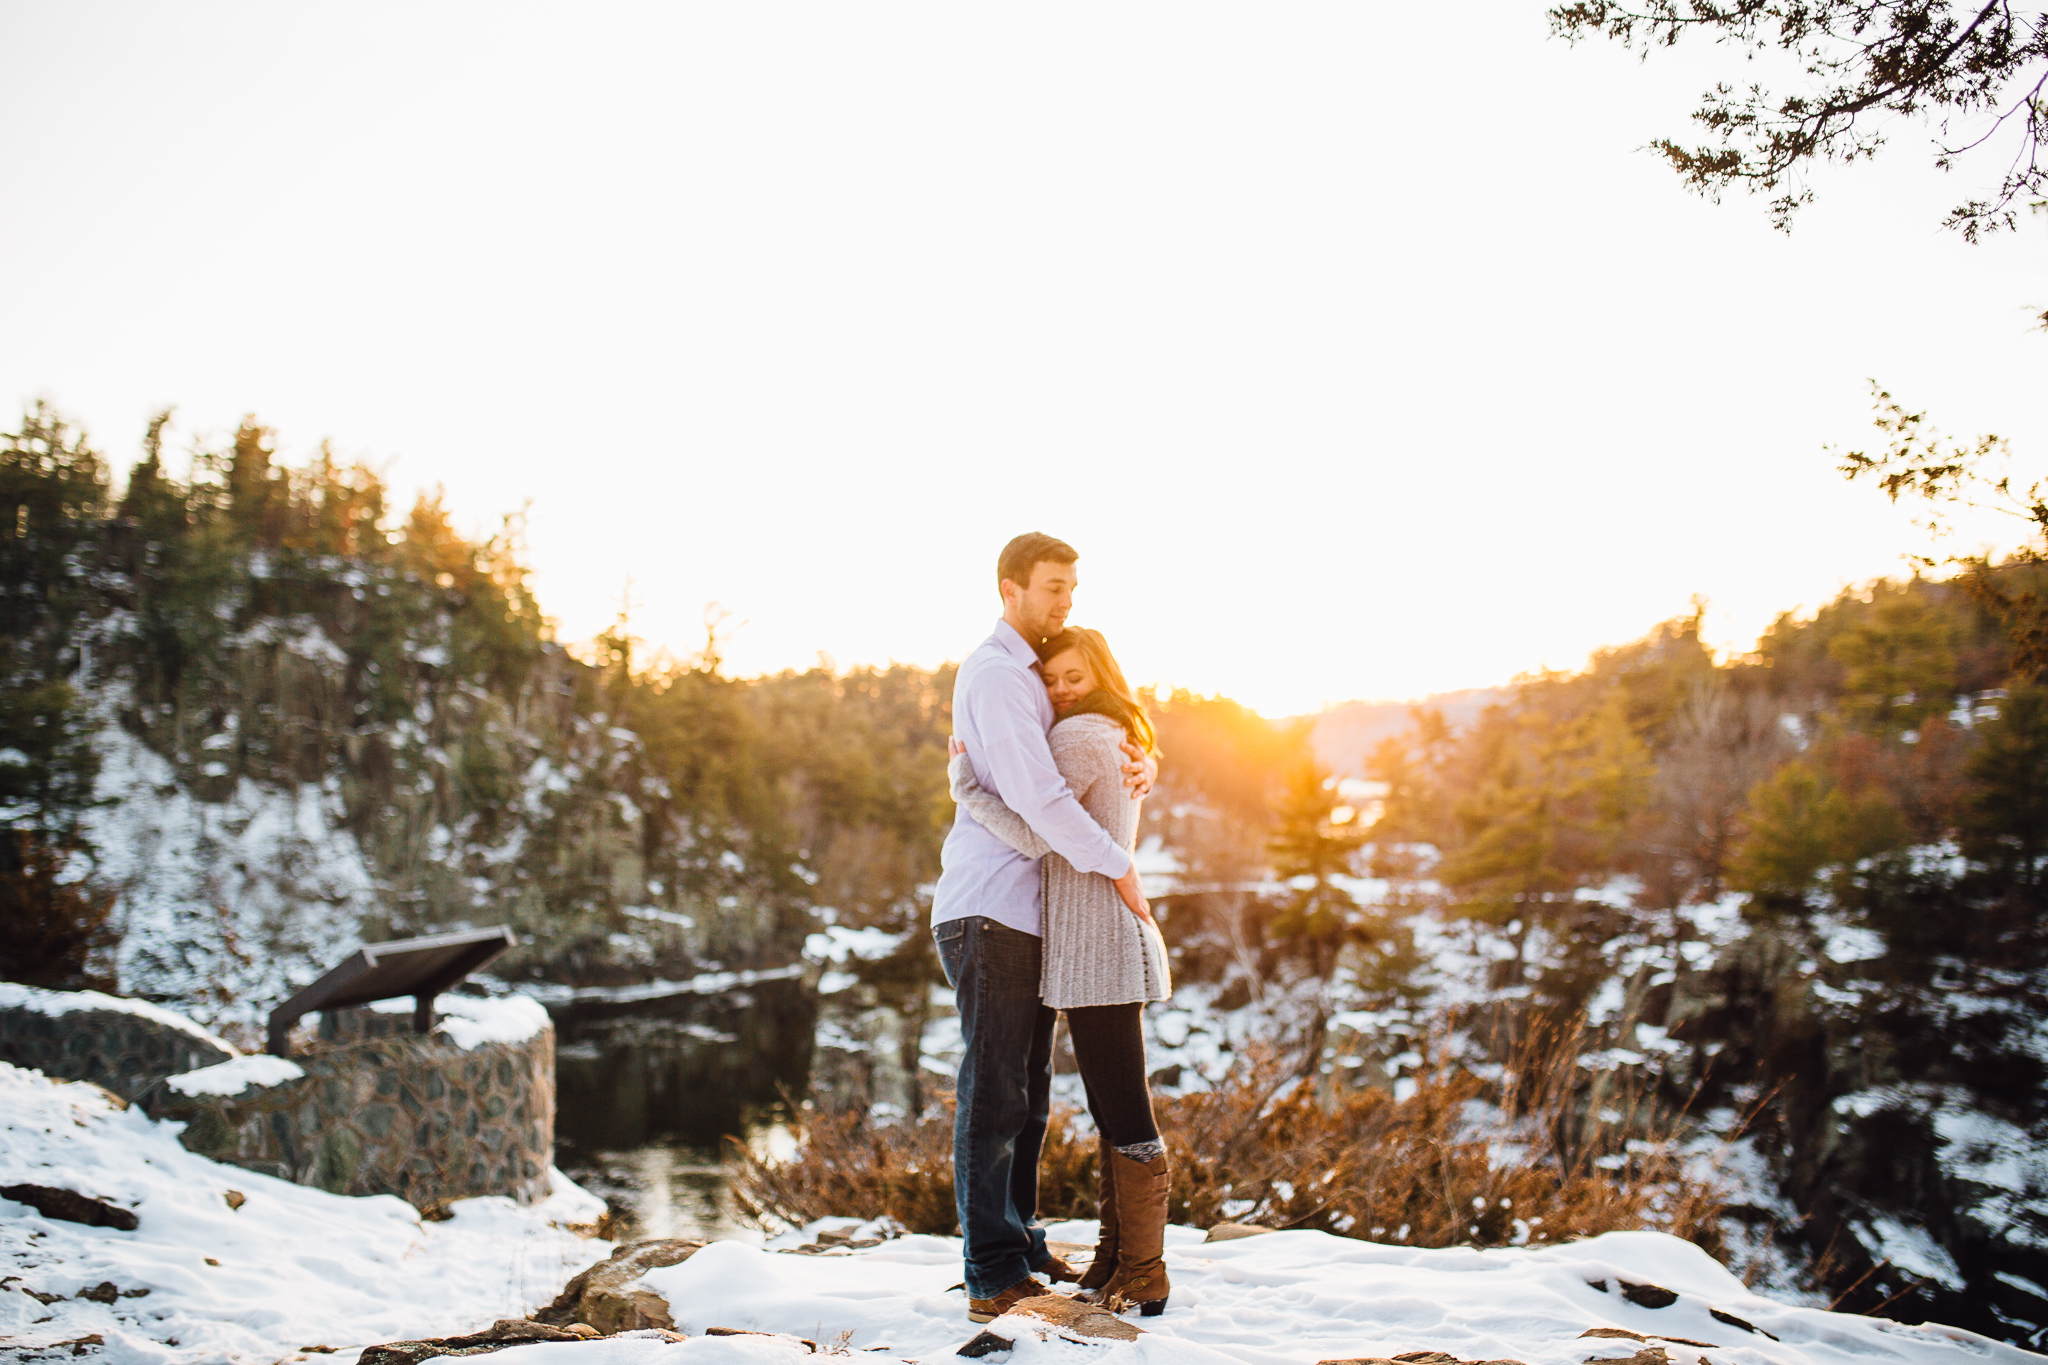 st-cloud-minnesota-winter-engagement-taylors-falls-interstate-state-park-wedding-photographer-2693.jpg